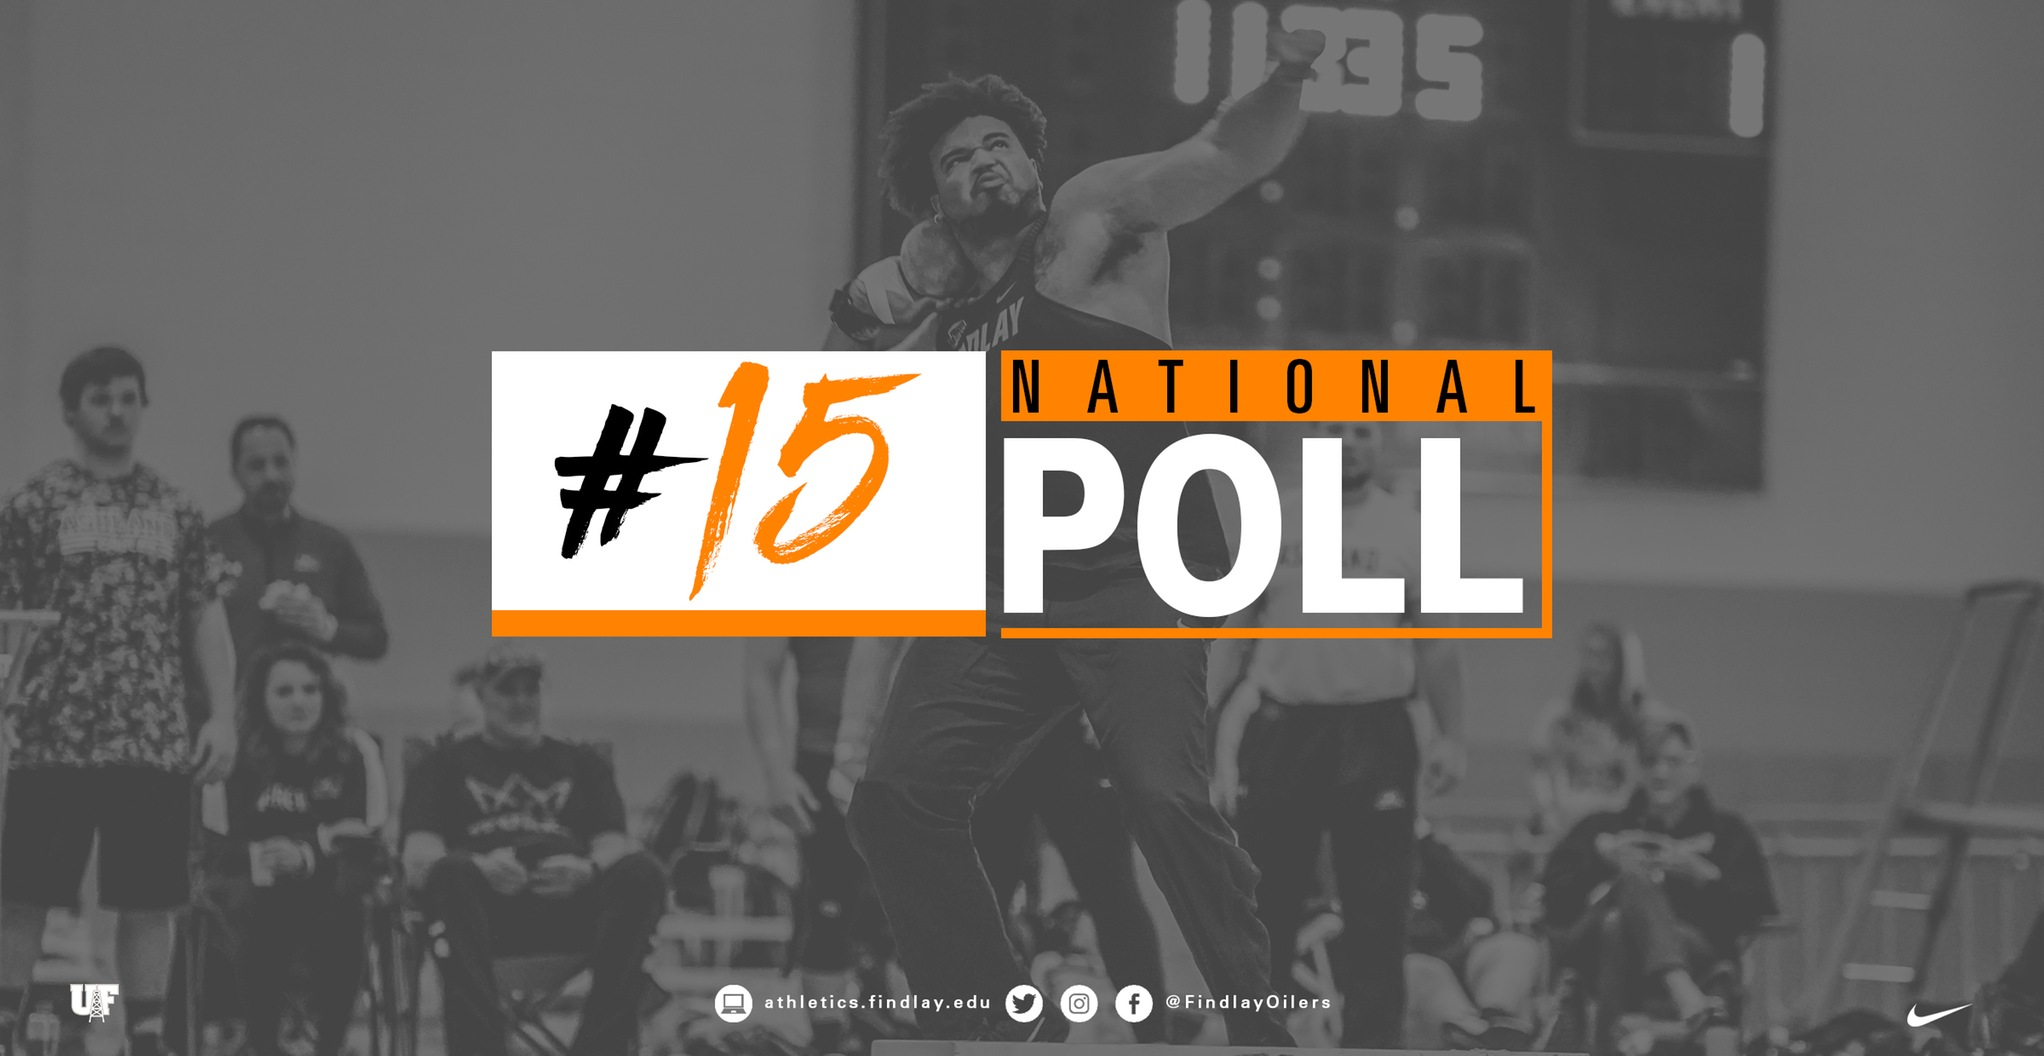 Oilers Ranked 15th in Latest National Poll